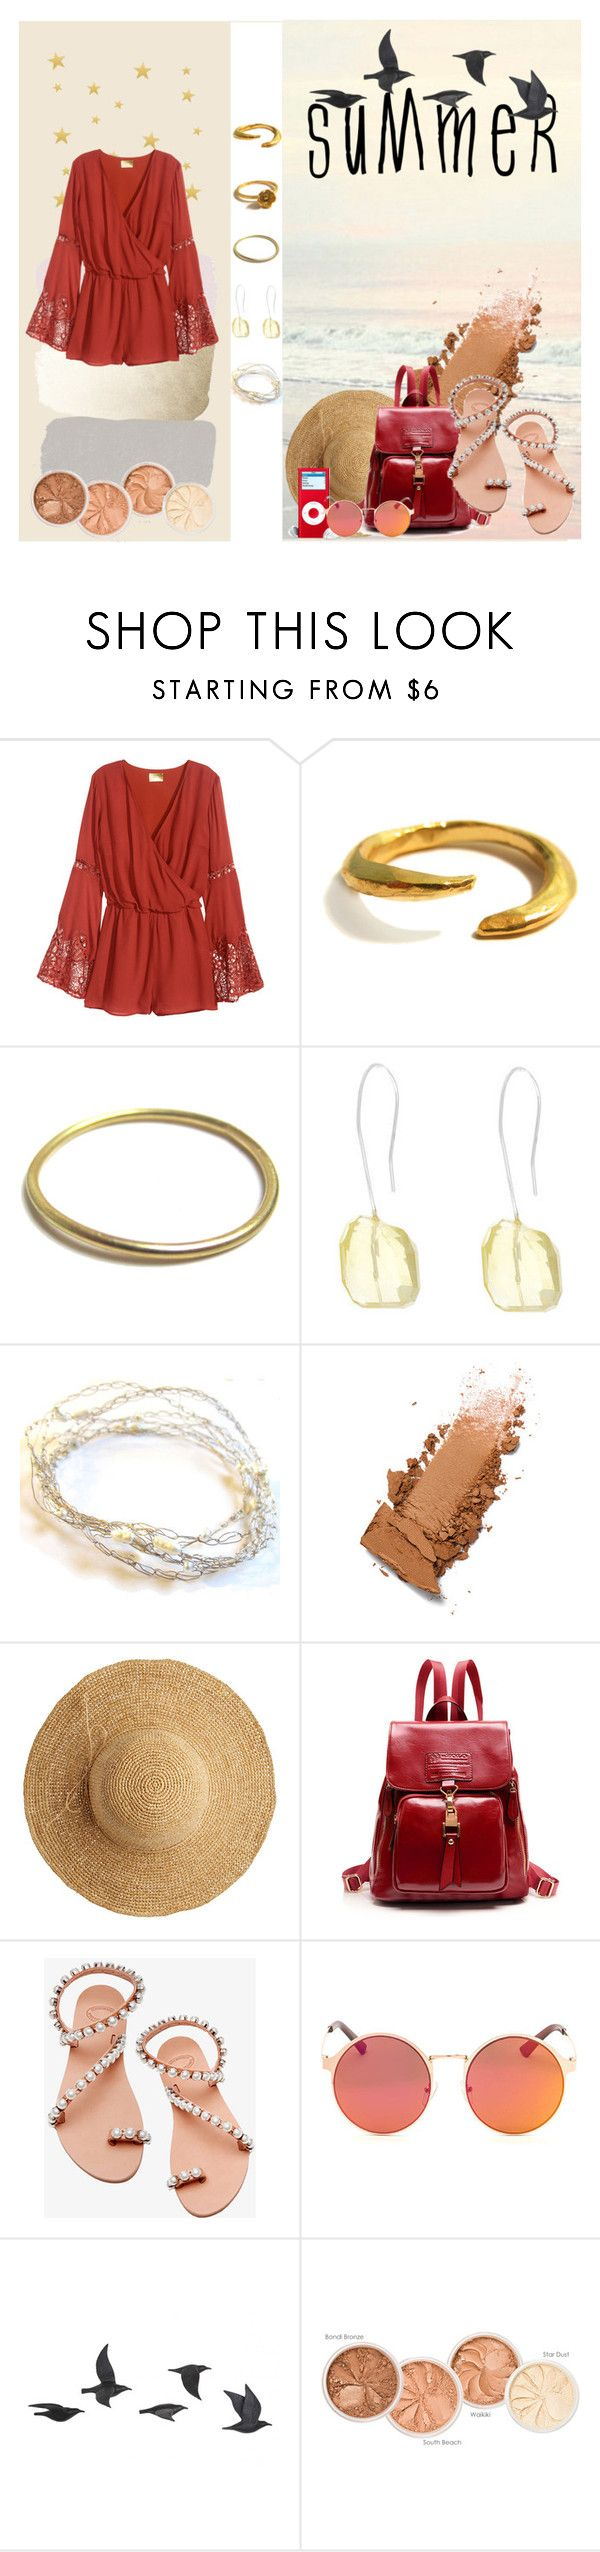 """Summer is coming !"" by ann-sarah on Polyvore featuring mode, Catherine Marche, Flora Bella, Elina Linardaki et Jayson Home  #fashion #mode #summer #is #coming #summerstyle  #summer2016 #fashionset #polyvorefashion #polyvore #chic #classy #beautiful #beach #jumpsuits #pink #choies #jewels #catherinemarche #pretty #prettypastels #bag #sunglasses #lindafarrow #rupertsanderson #hautelook #stellamccartney #kohls #makeup #colorful #earrings #necklace #bracelet #phonecase #shoes"